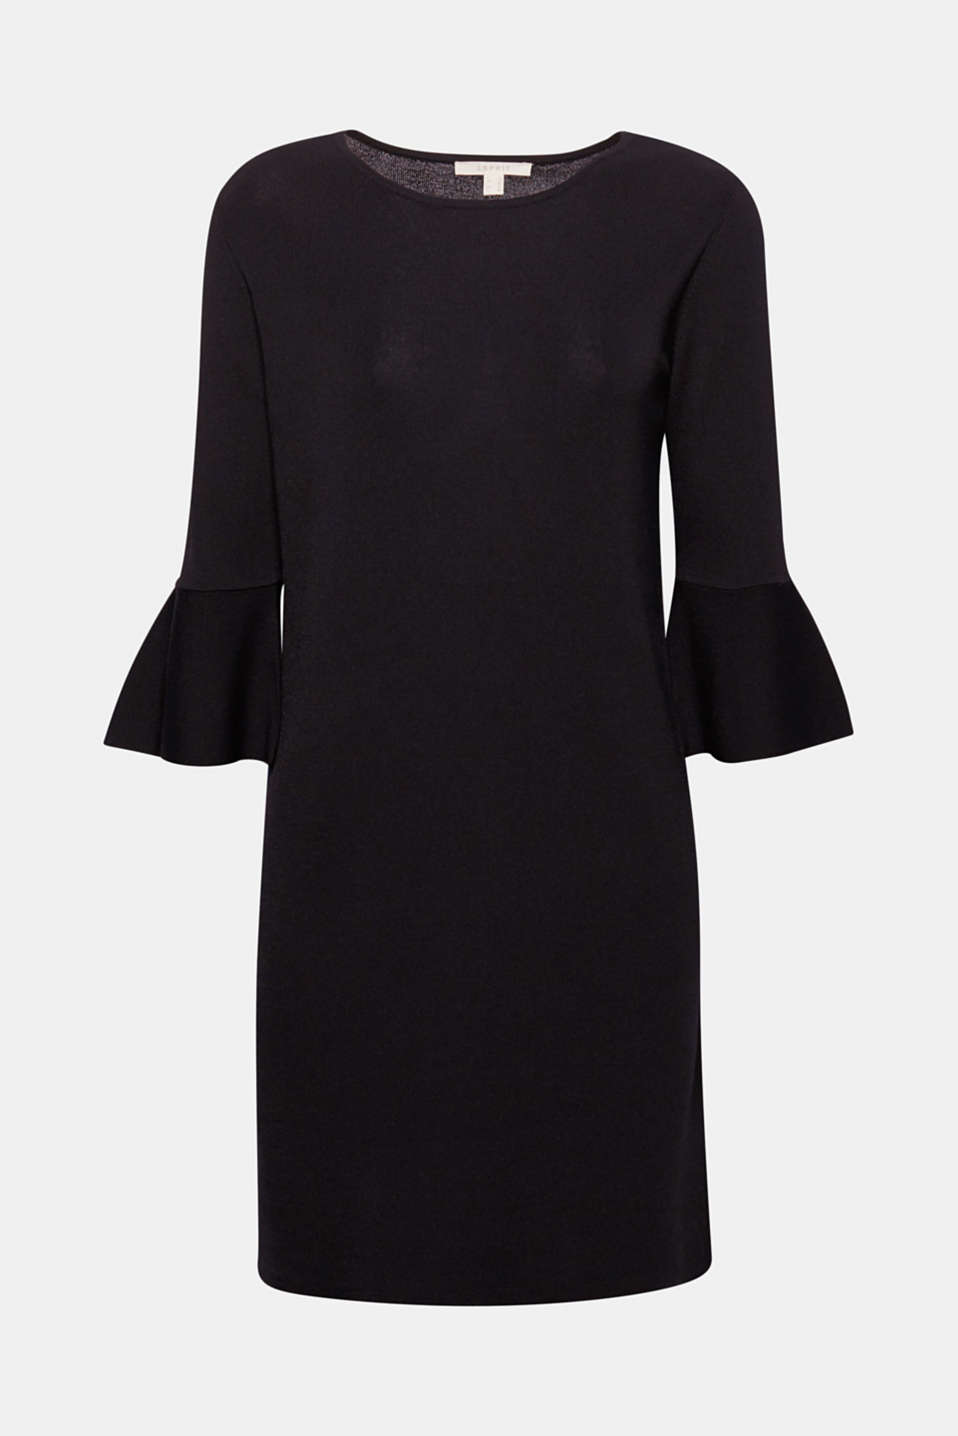 We love minimalistic designs, like this ribbed dress with trumpet sleeves